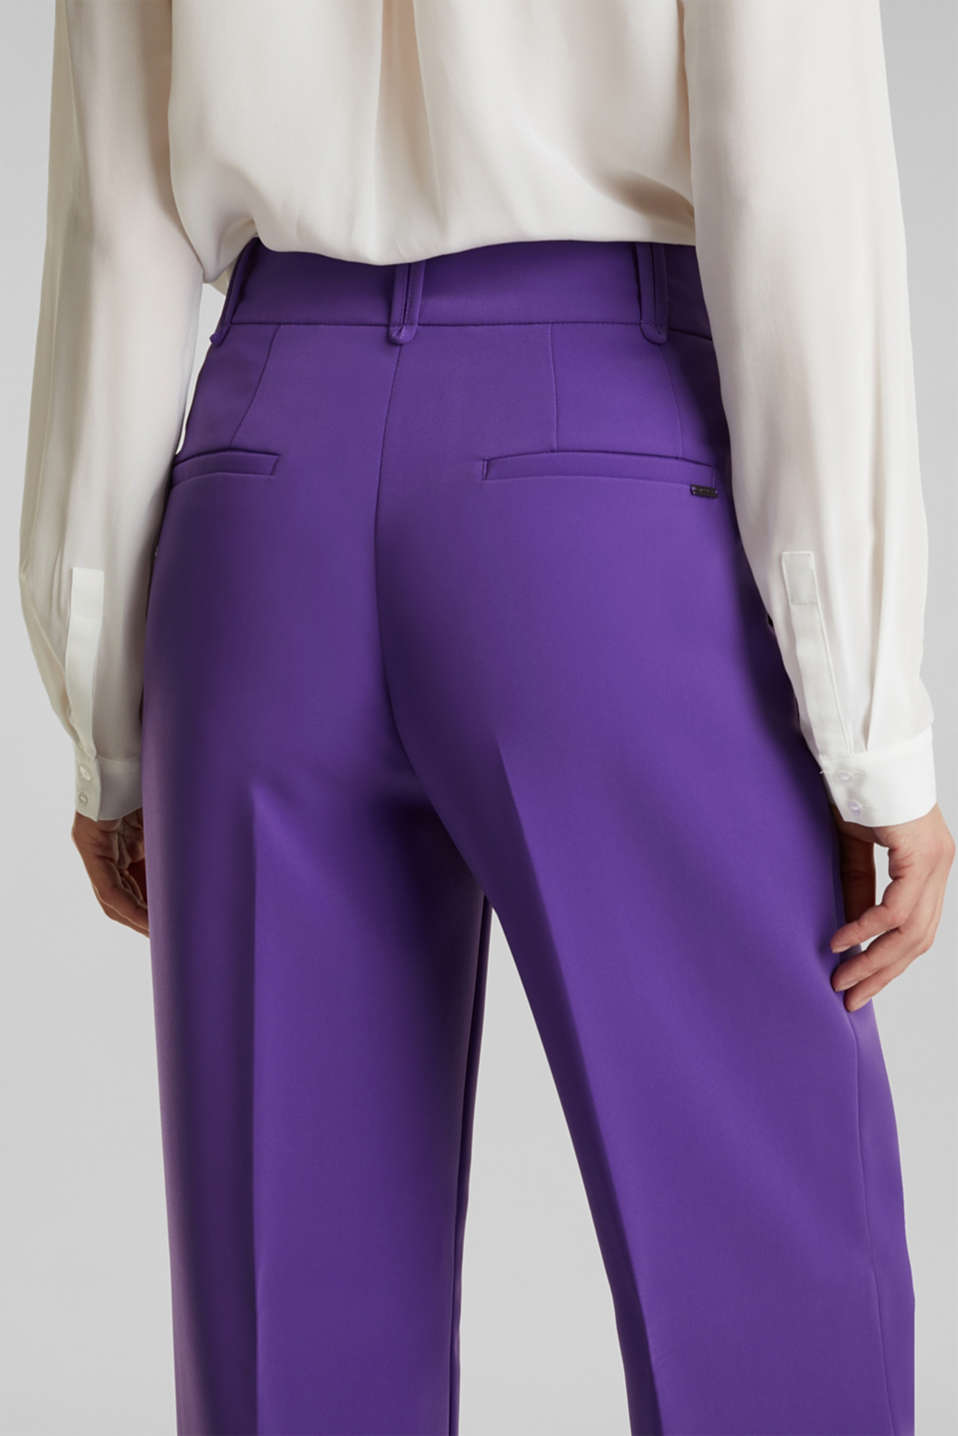 TECHNO TWILL mix + match wide stretch trousers, PURPLE, detail image number 5